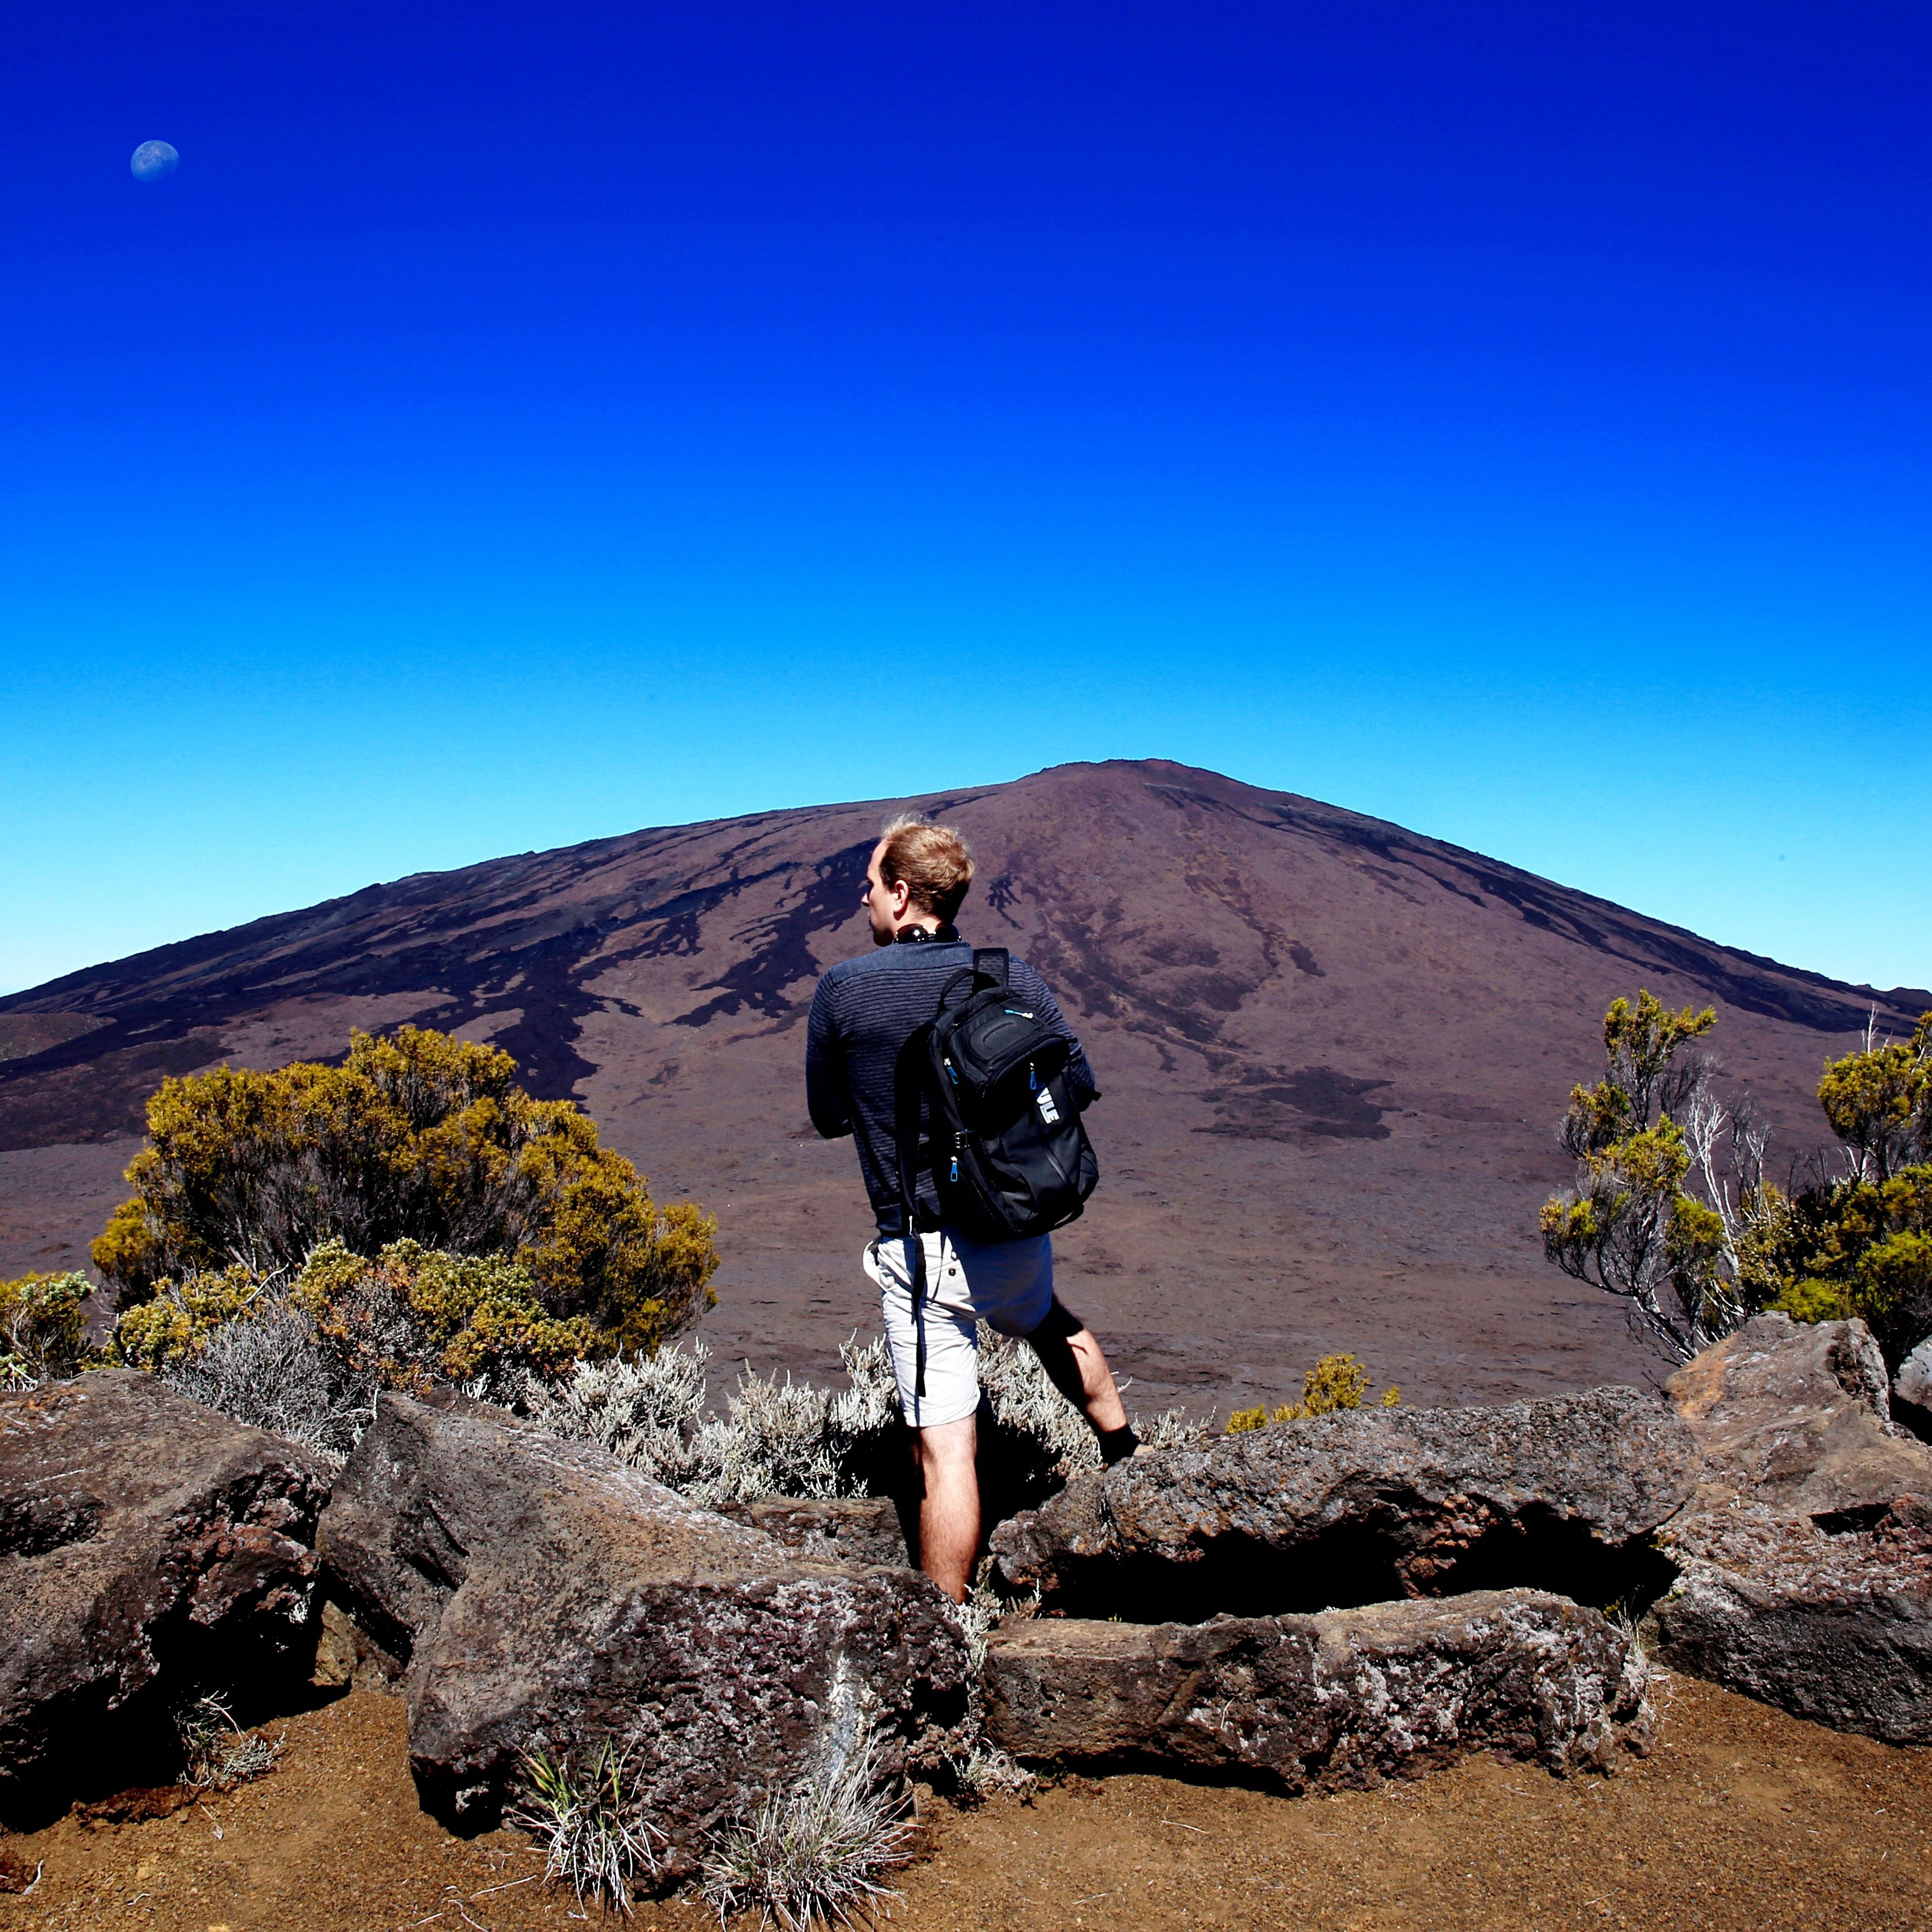 clear sky, copy space, blue, full length, lifestyles, leisure activity, casual clothing, sunlight, standing, rock - object, mountain, young adult, young men, nature, men, day, rear view, landscape